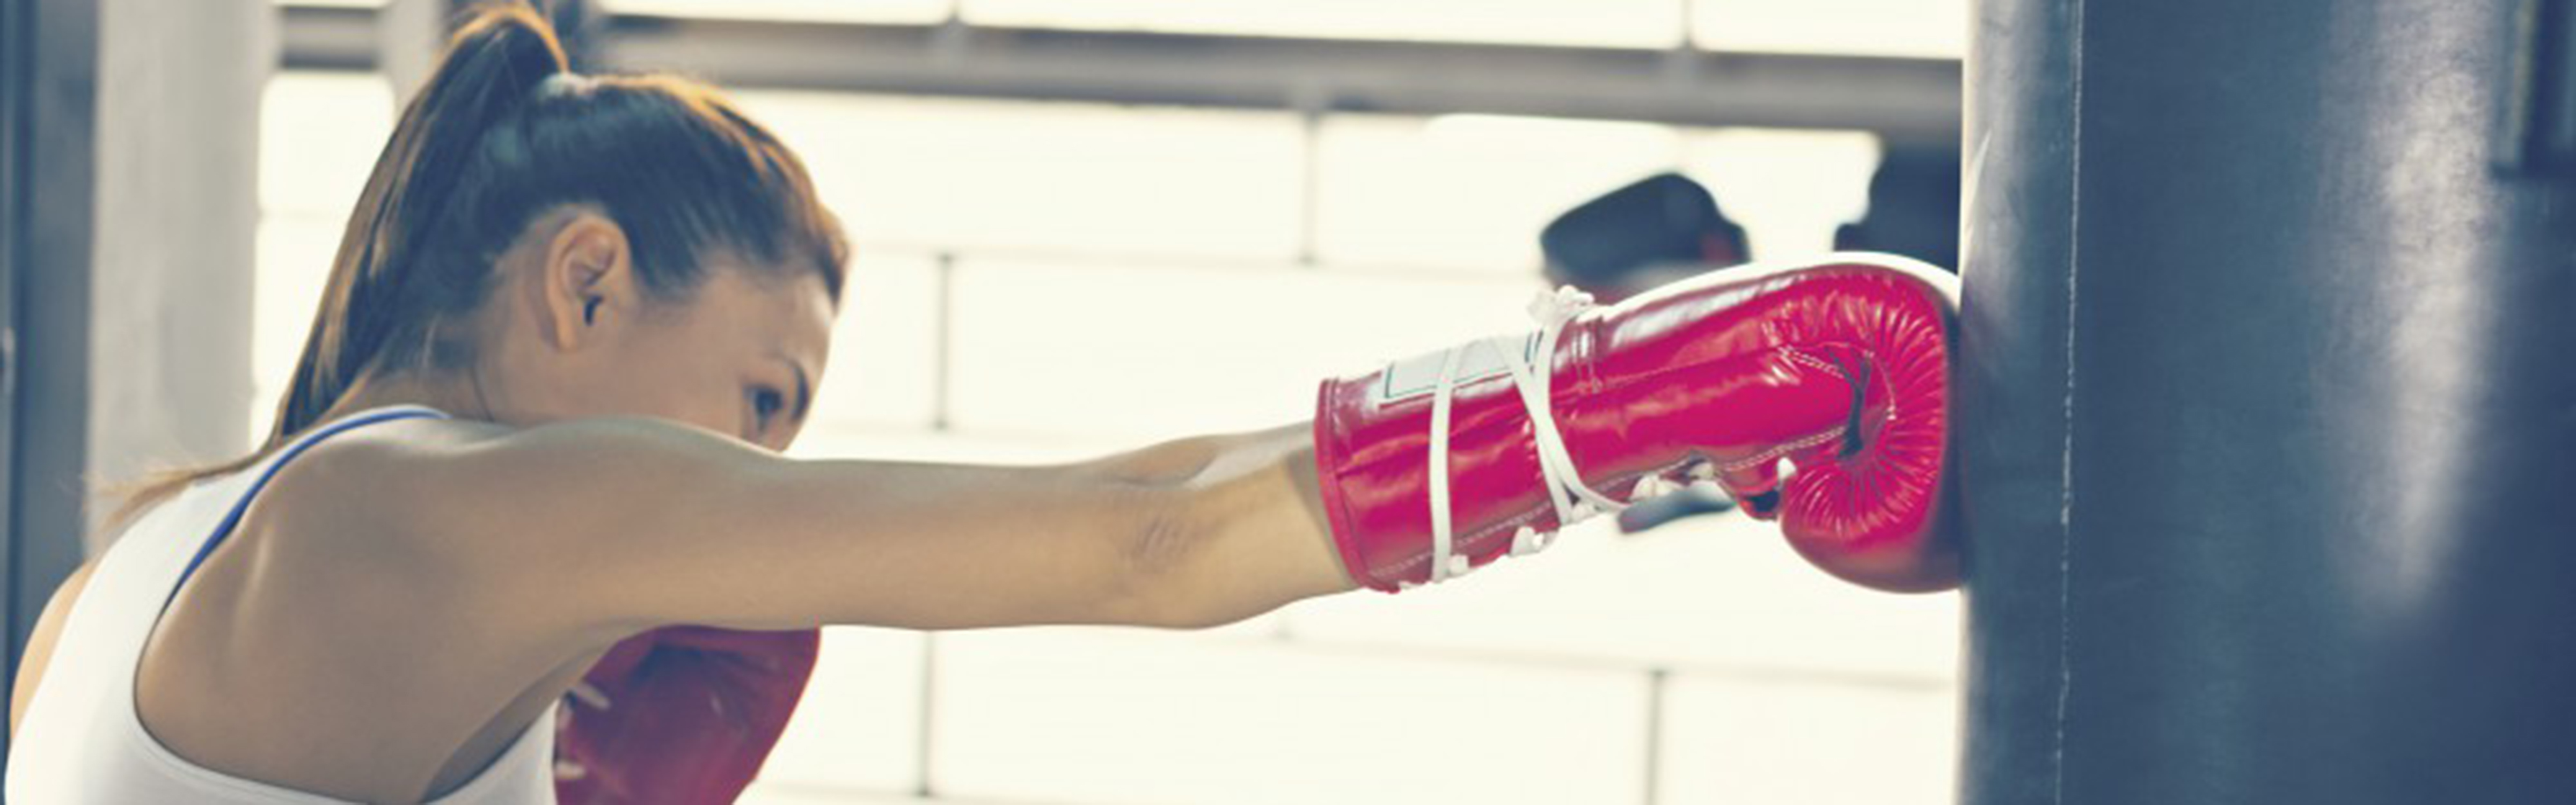 Top 5 Best Water Punching Bags [Buying Guide]